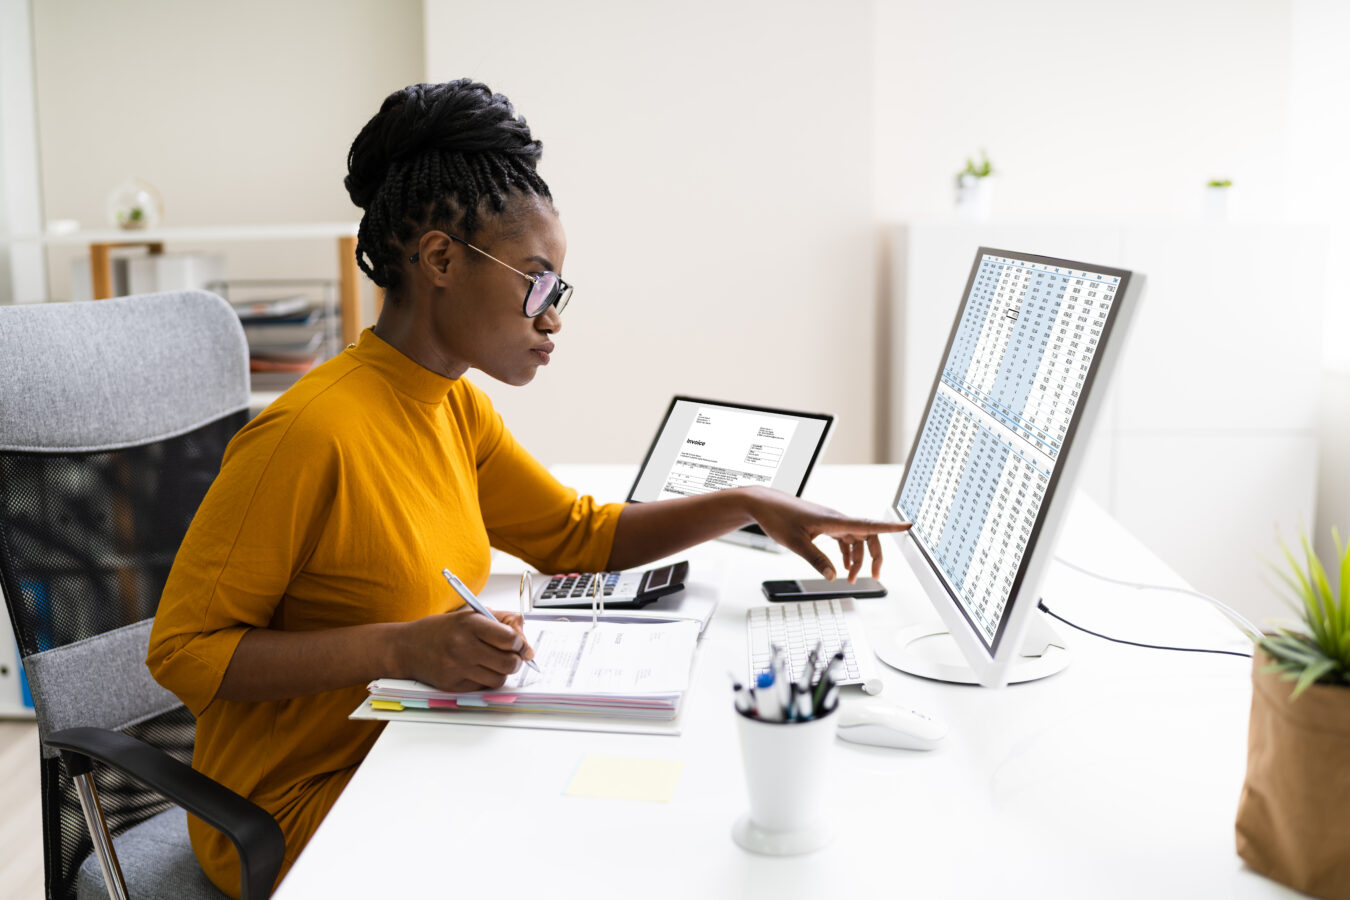 A young woman uses her computer to gather zero-party data.